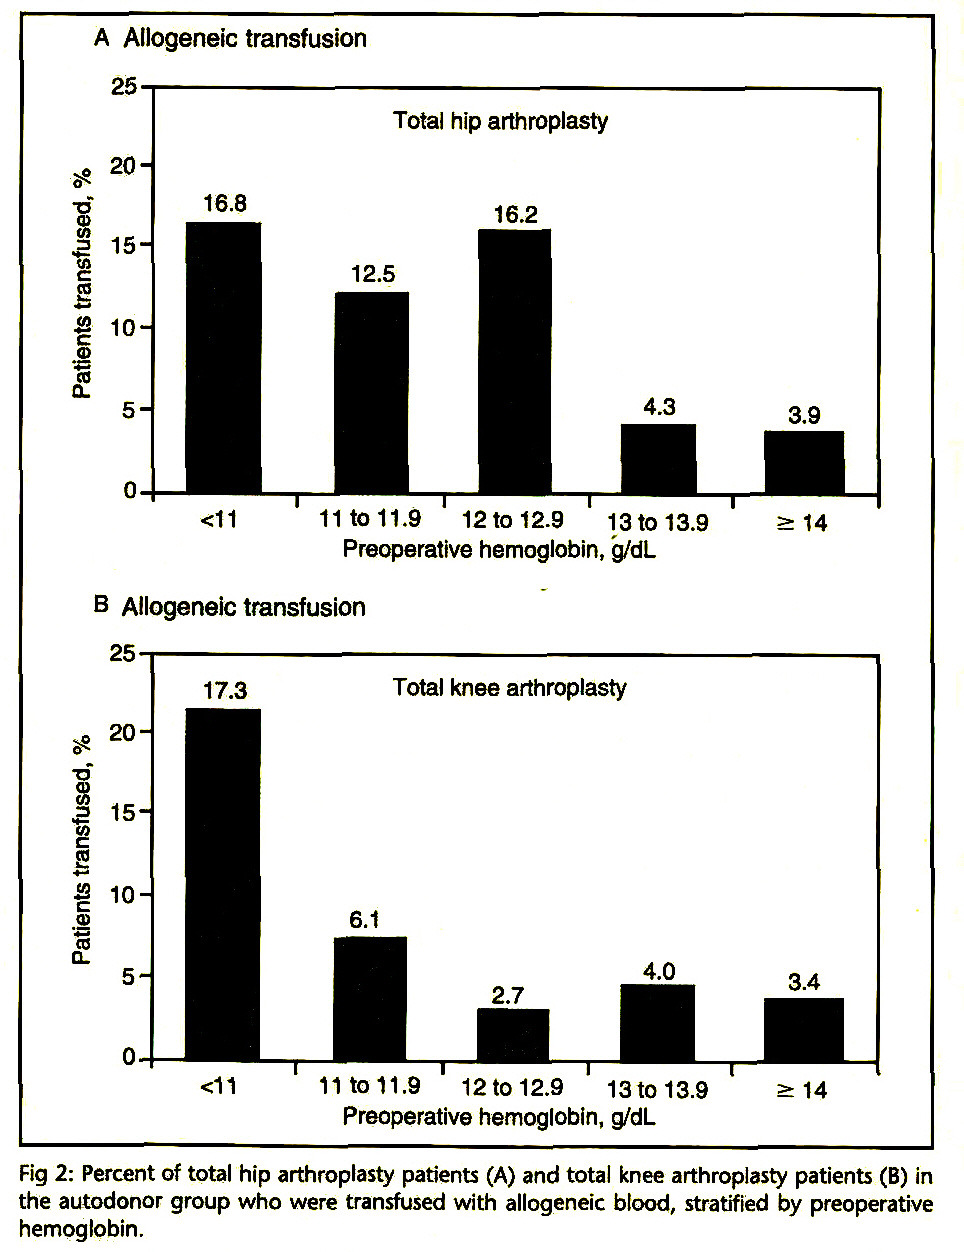 Fig 2: Percent of total hip arthroplasty patients (A) and total knee arthroplasty patients (B) in the autodonor group who were transfused with allogeneic blood, stratified by preoperative hemoglobin.